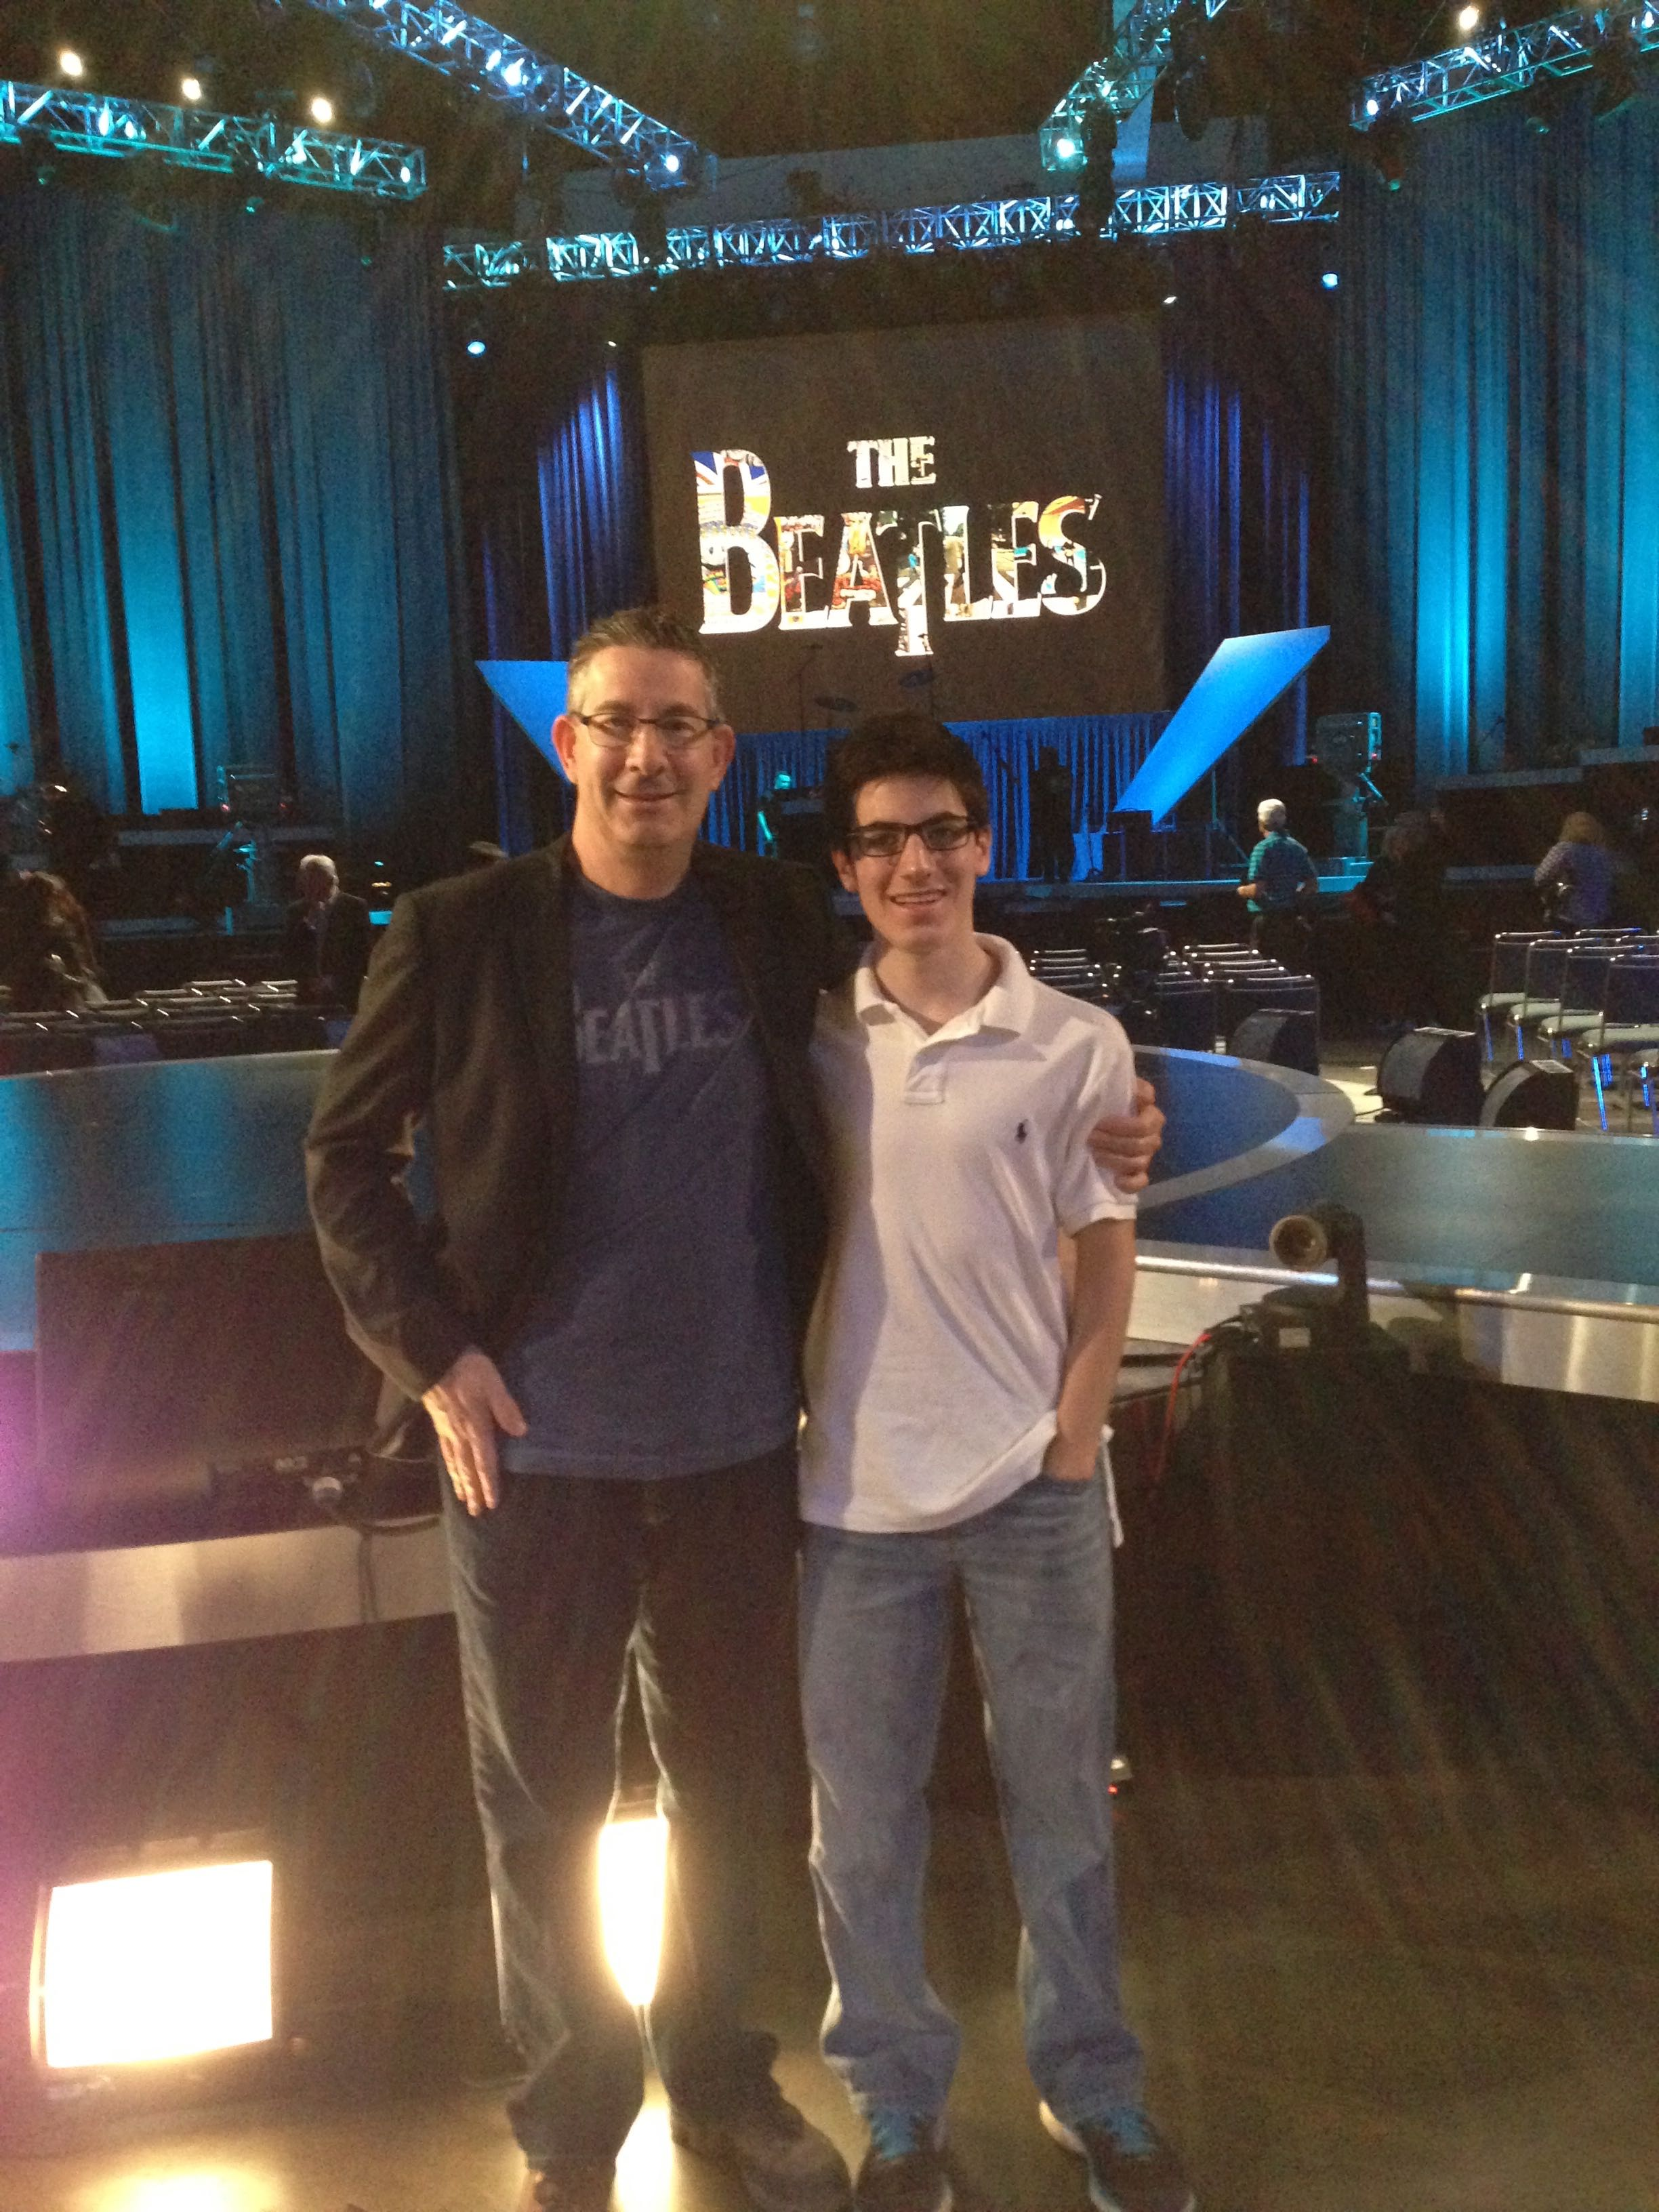 Zack Freiman at Grammy Salute to the Beatles - Jan., 2014